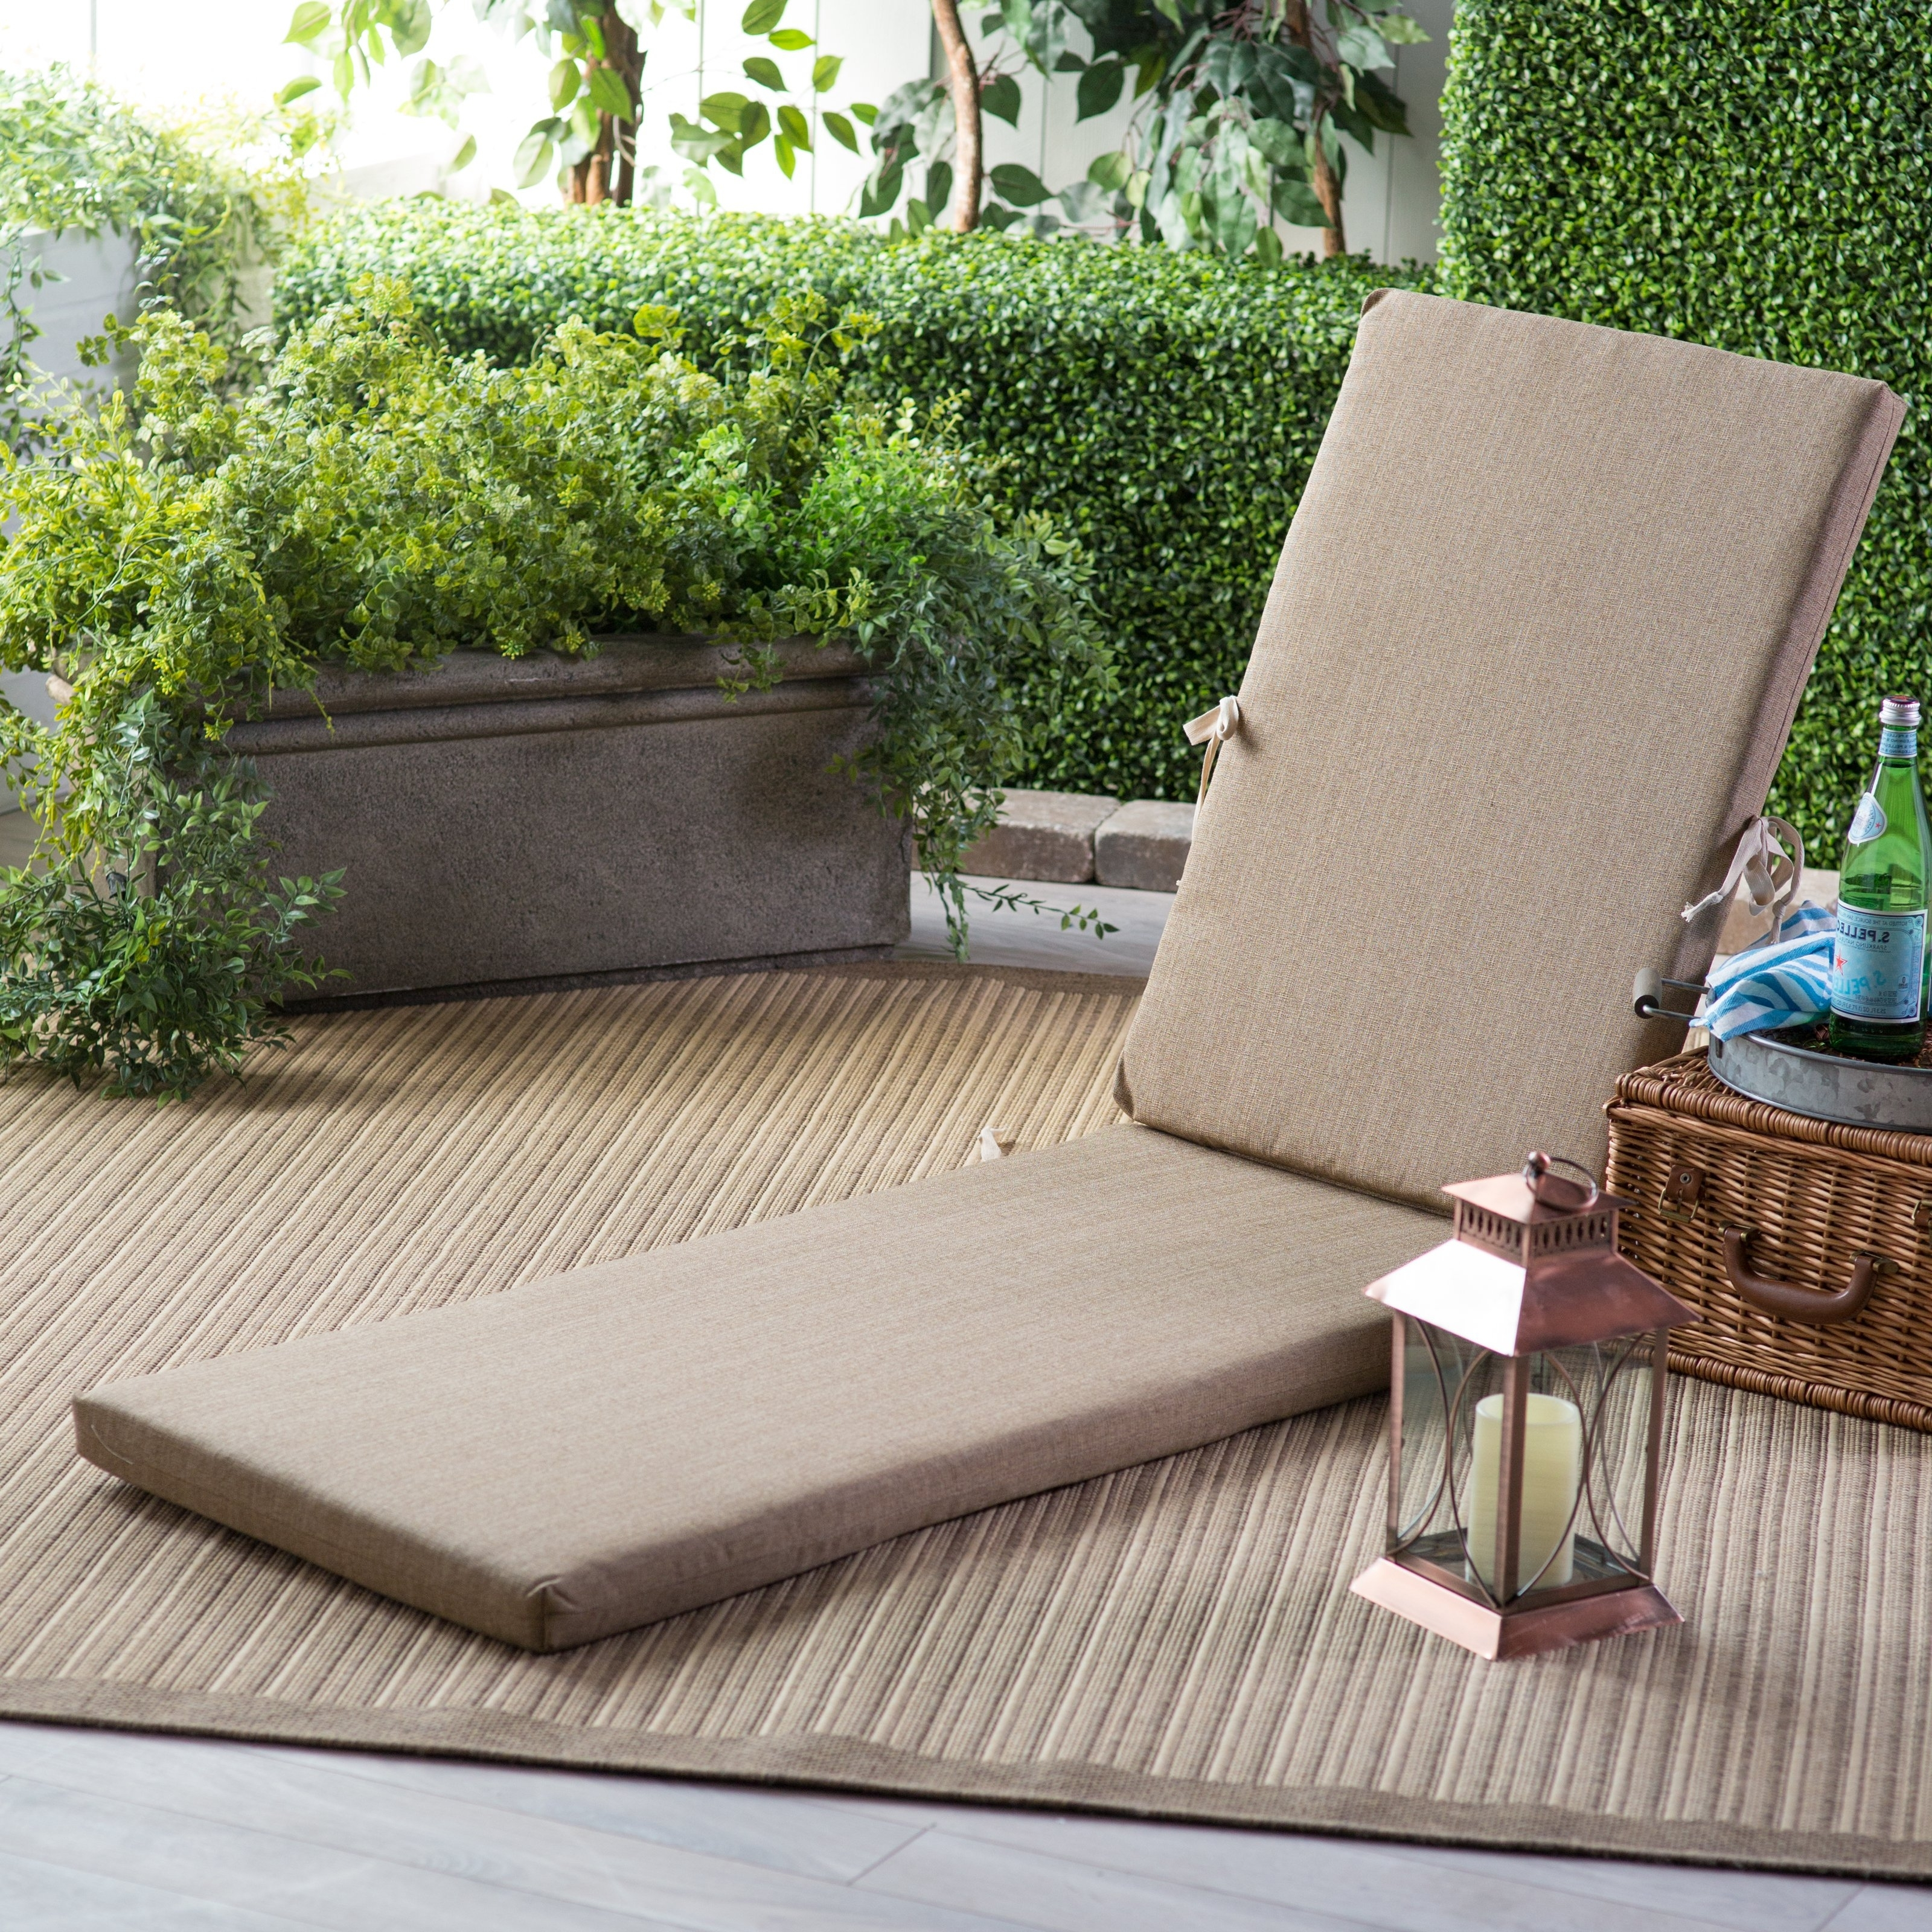 Hayneedle Throughout Sunbrella Chaise Cushions (View 3 of 15)